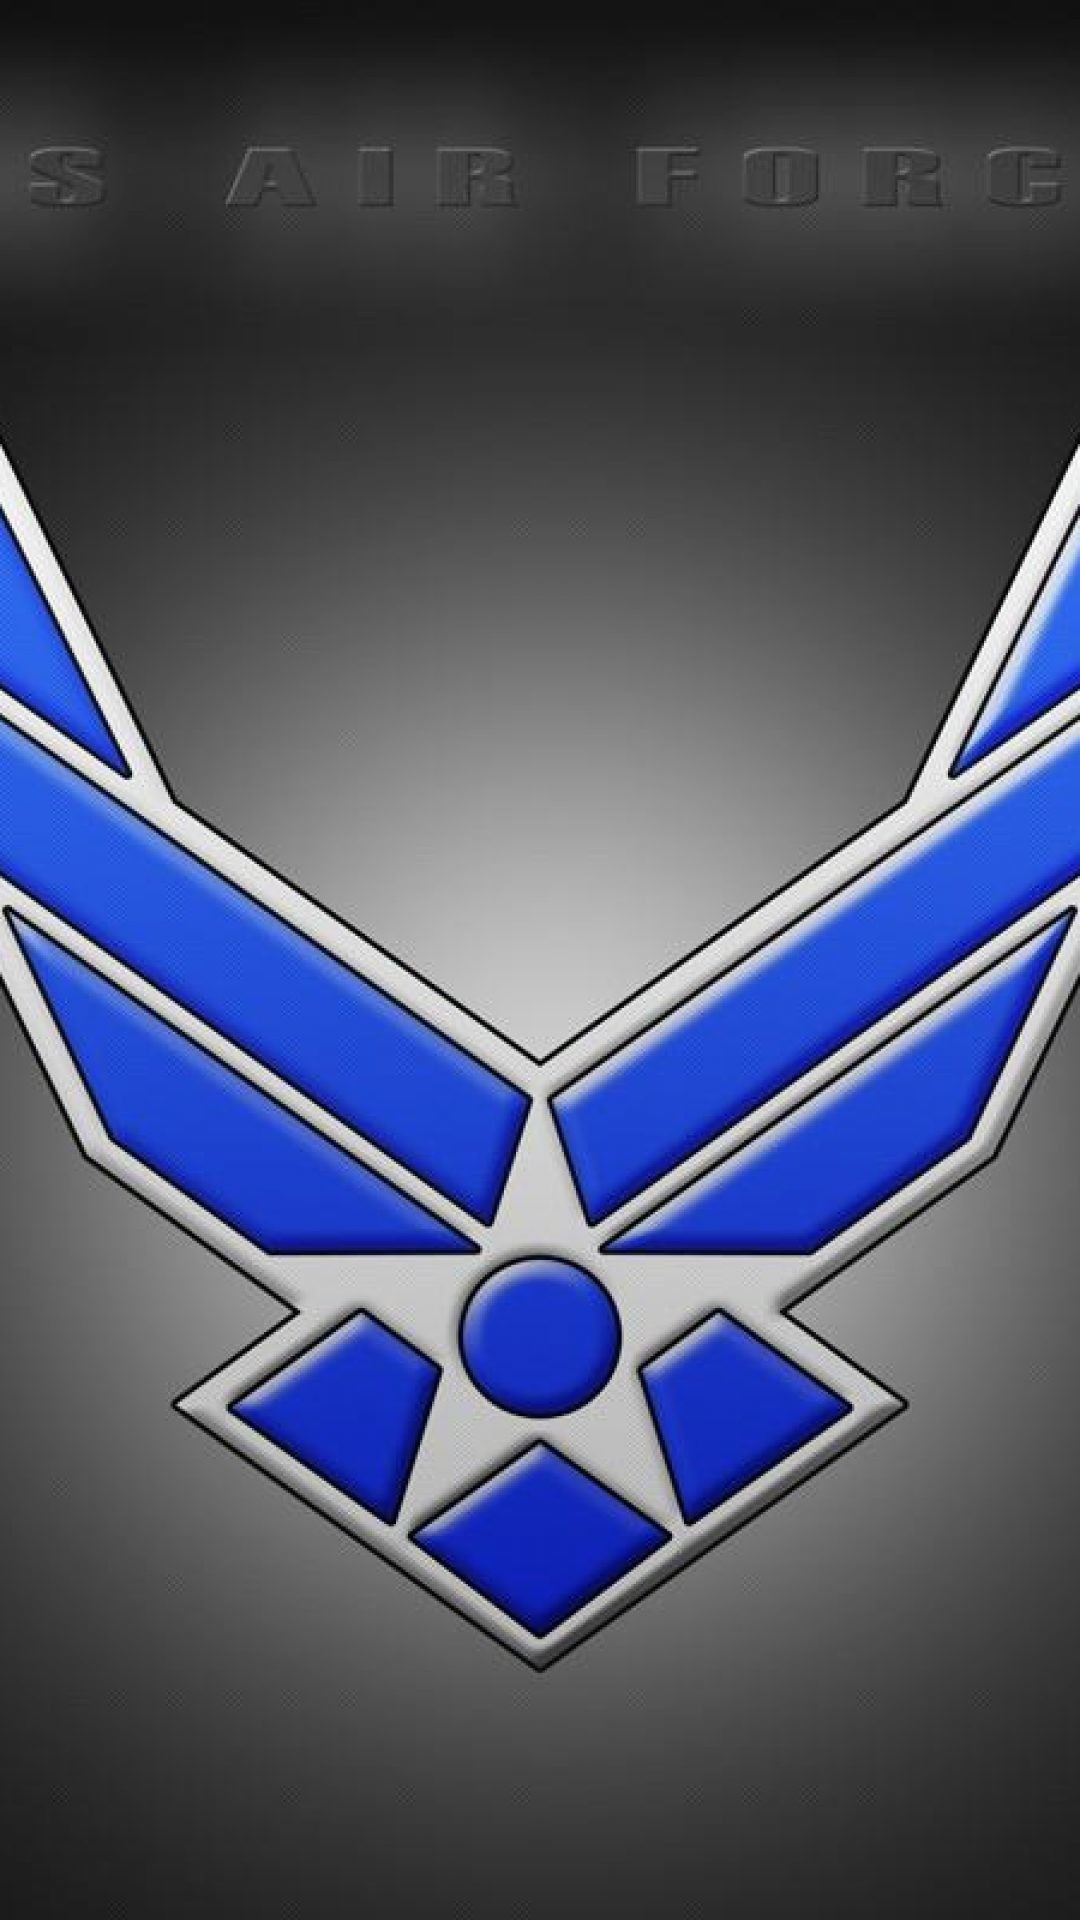 1080x1920 - Air Force Wallpaper for iPhone 8